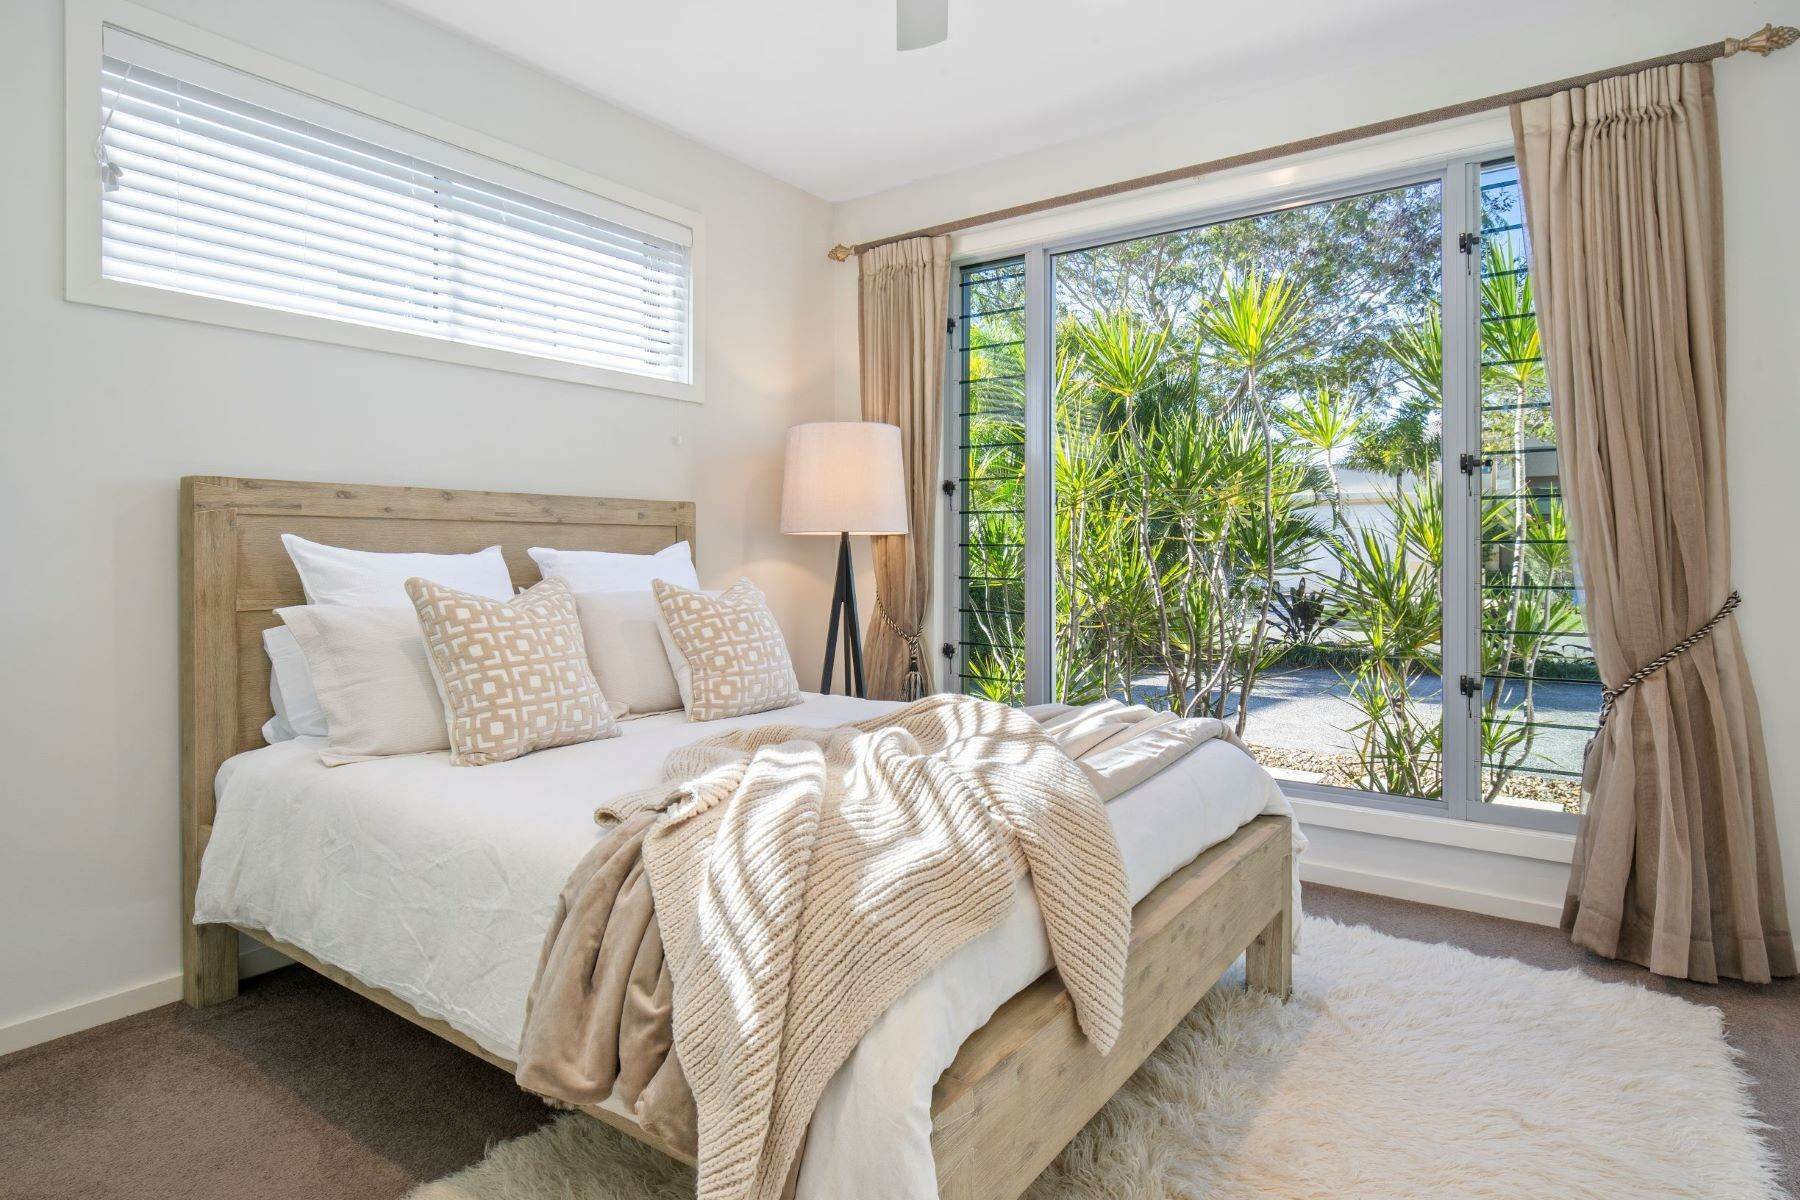 21. Single Family Homes for Sale at Luxury Lakeside Family Home on Prestigious Emerald Island 5068 Emerald Island Drive Other Queensland, Queensland 4211 Australia